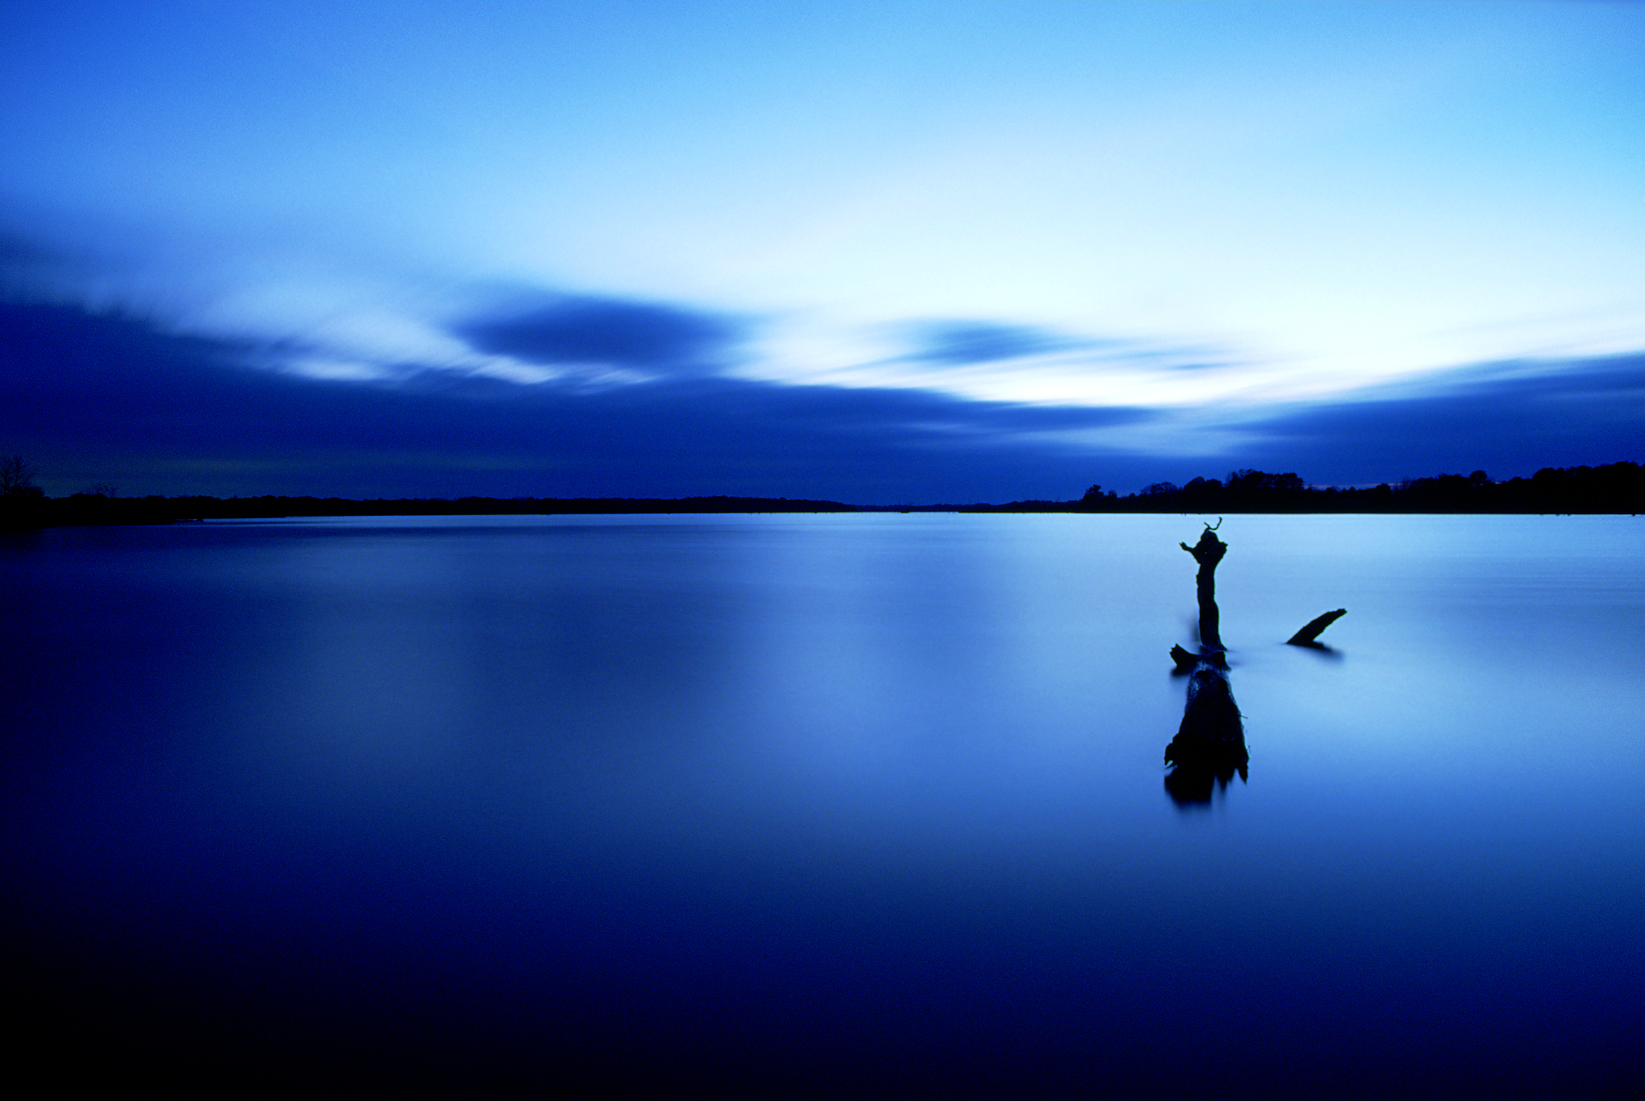 Tranquility in Blue